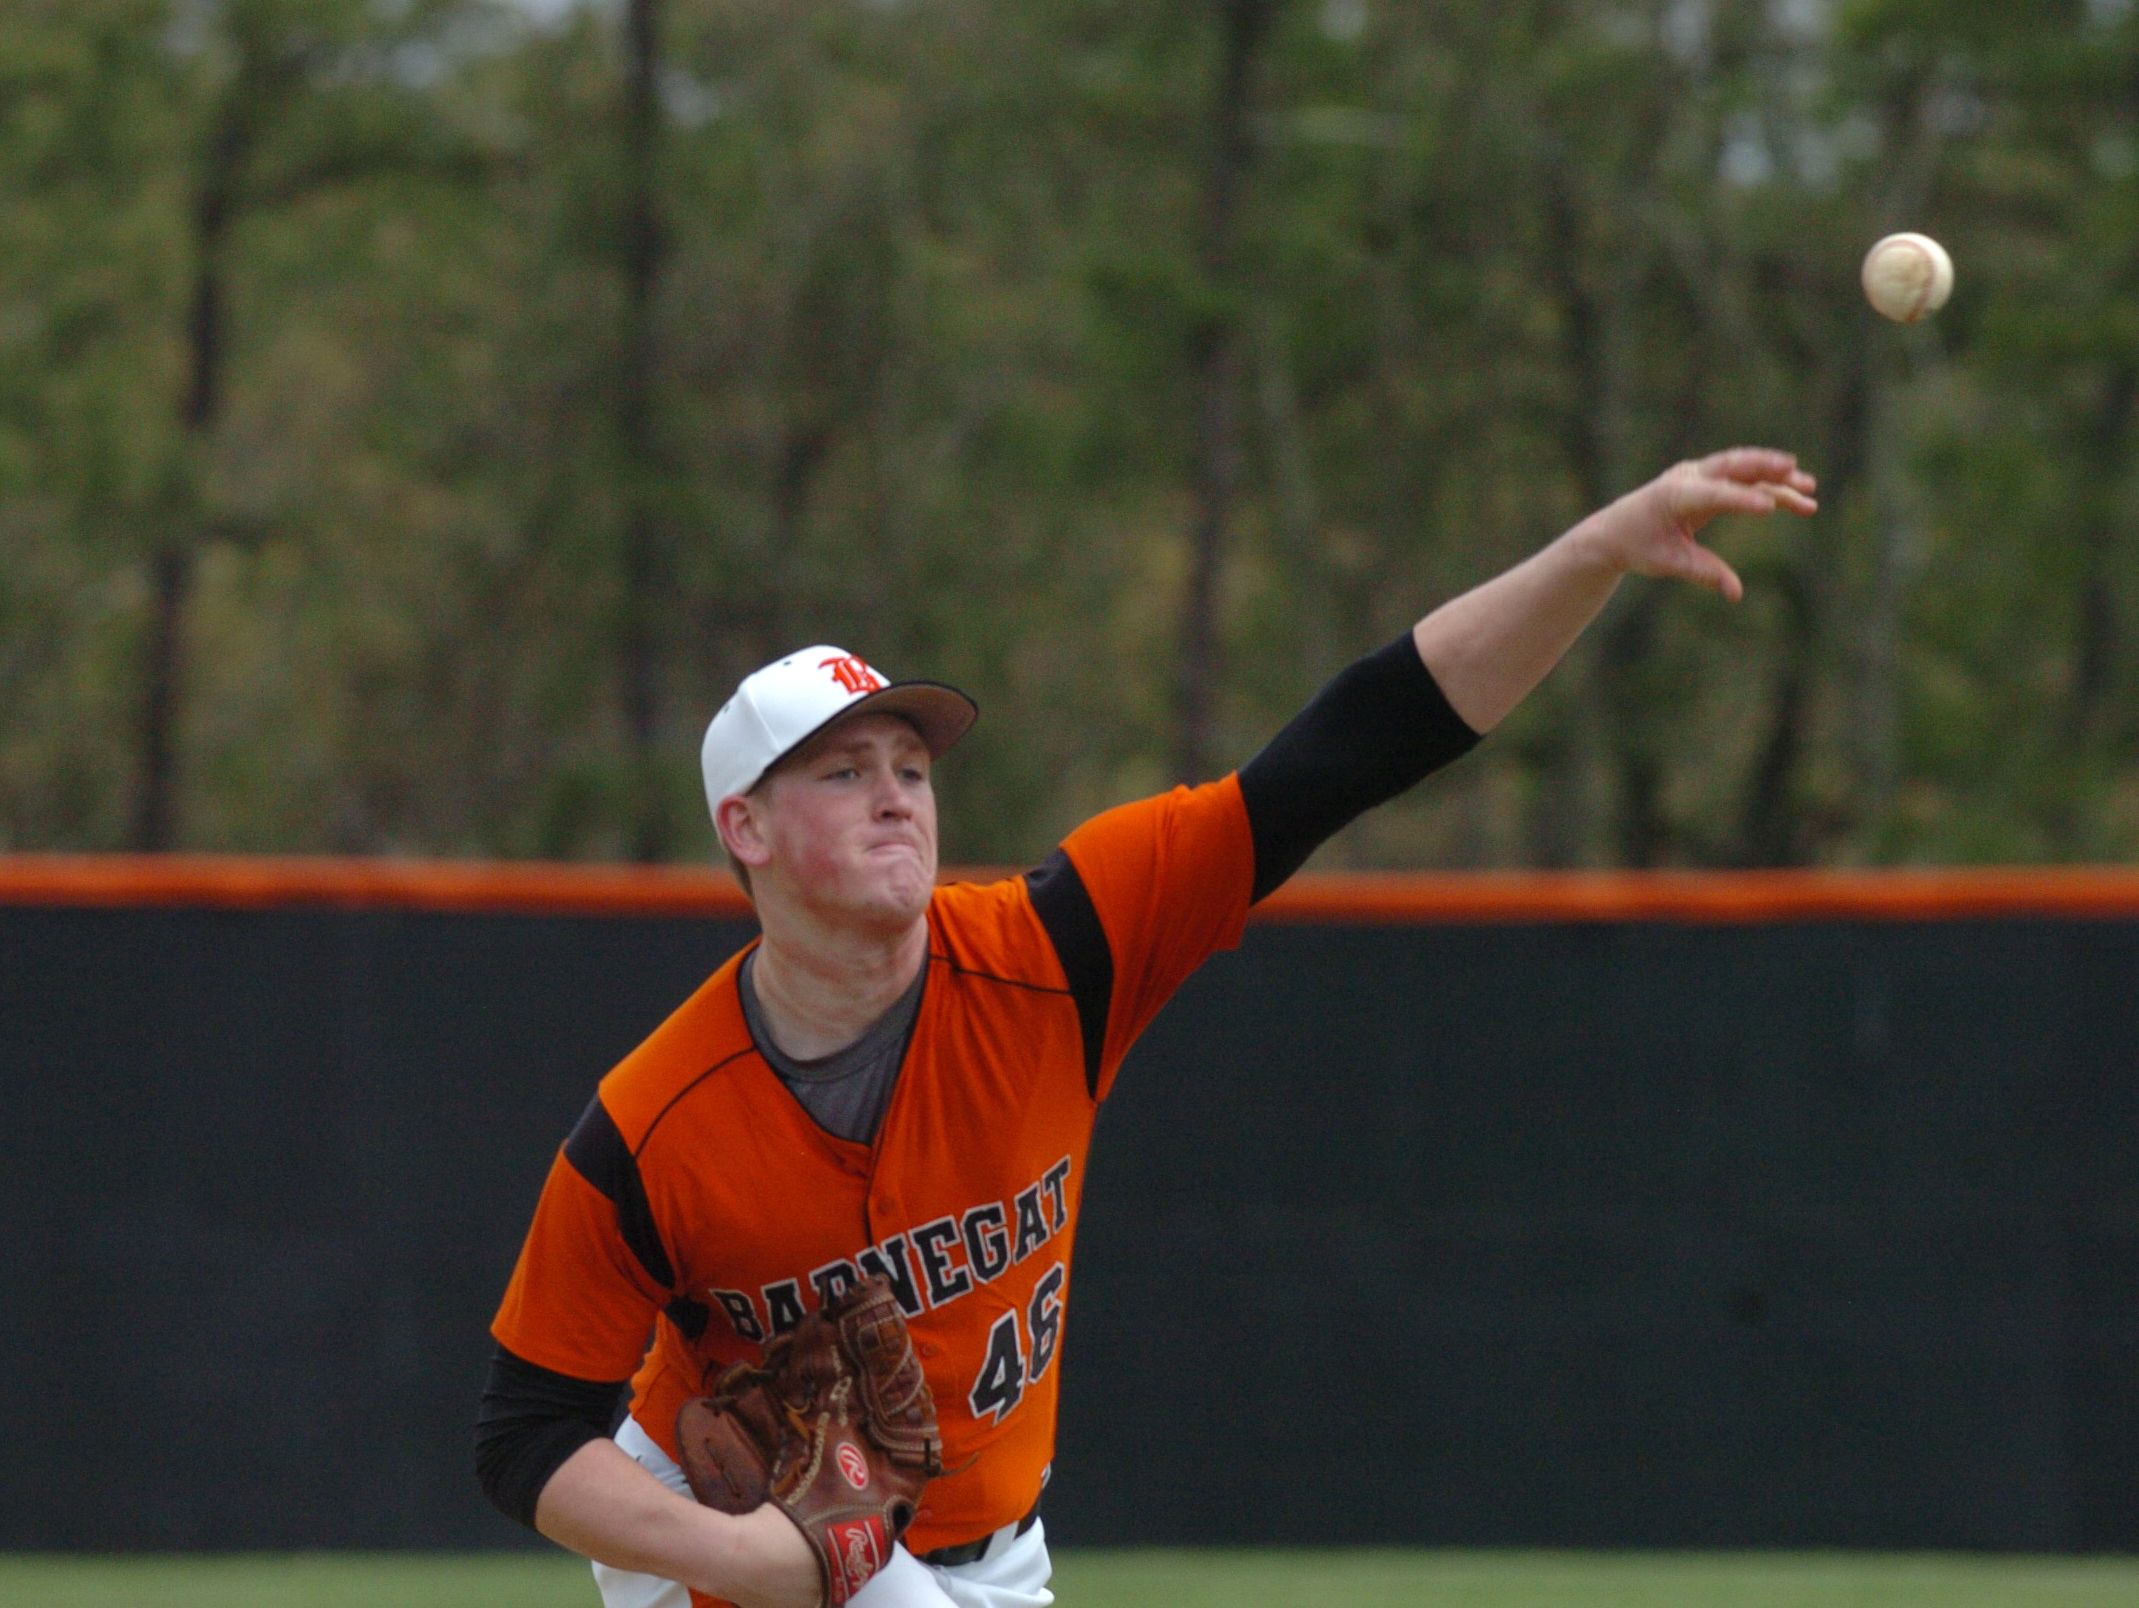 Barnegat pitcher Jason Groome throws against Pinelands in the Ocean County Baseball Tournament.